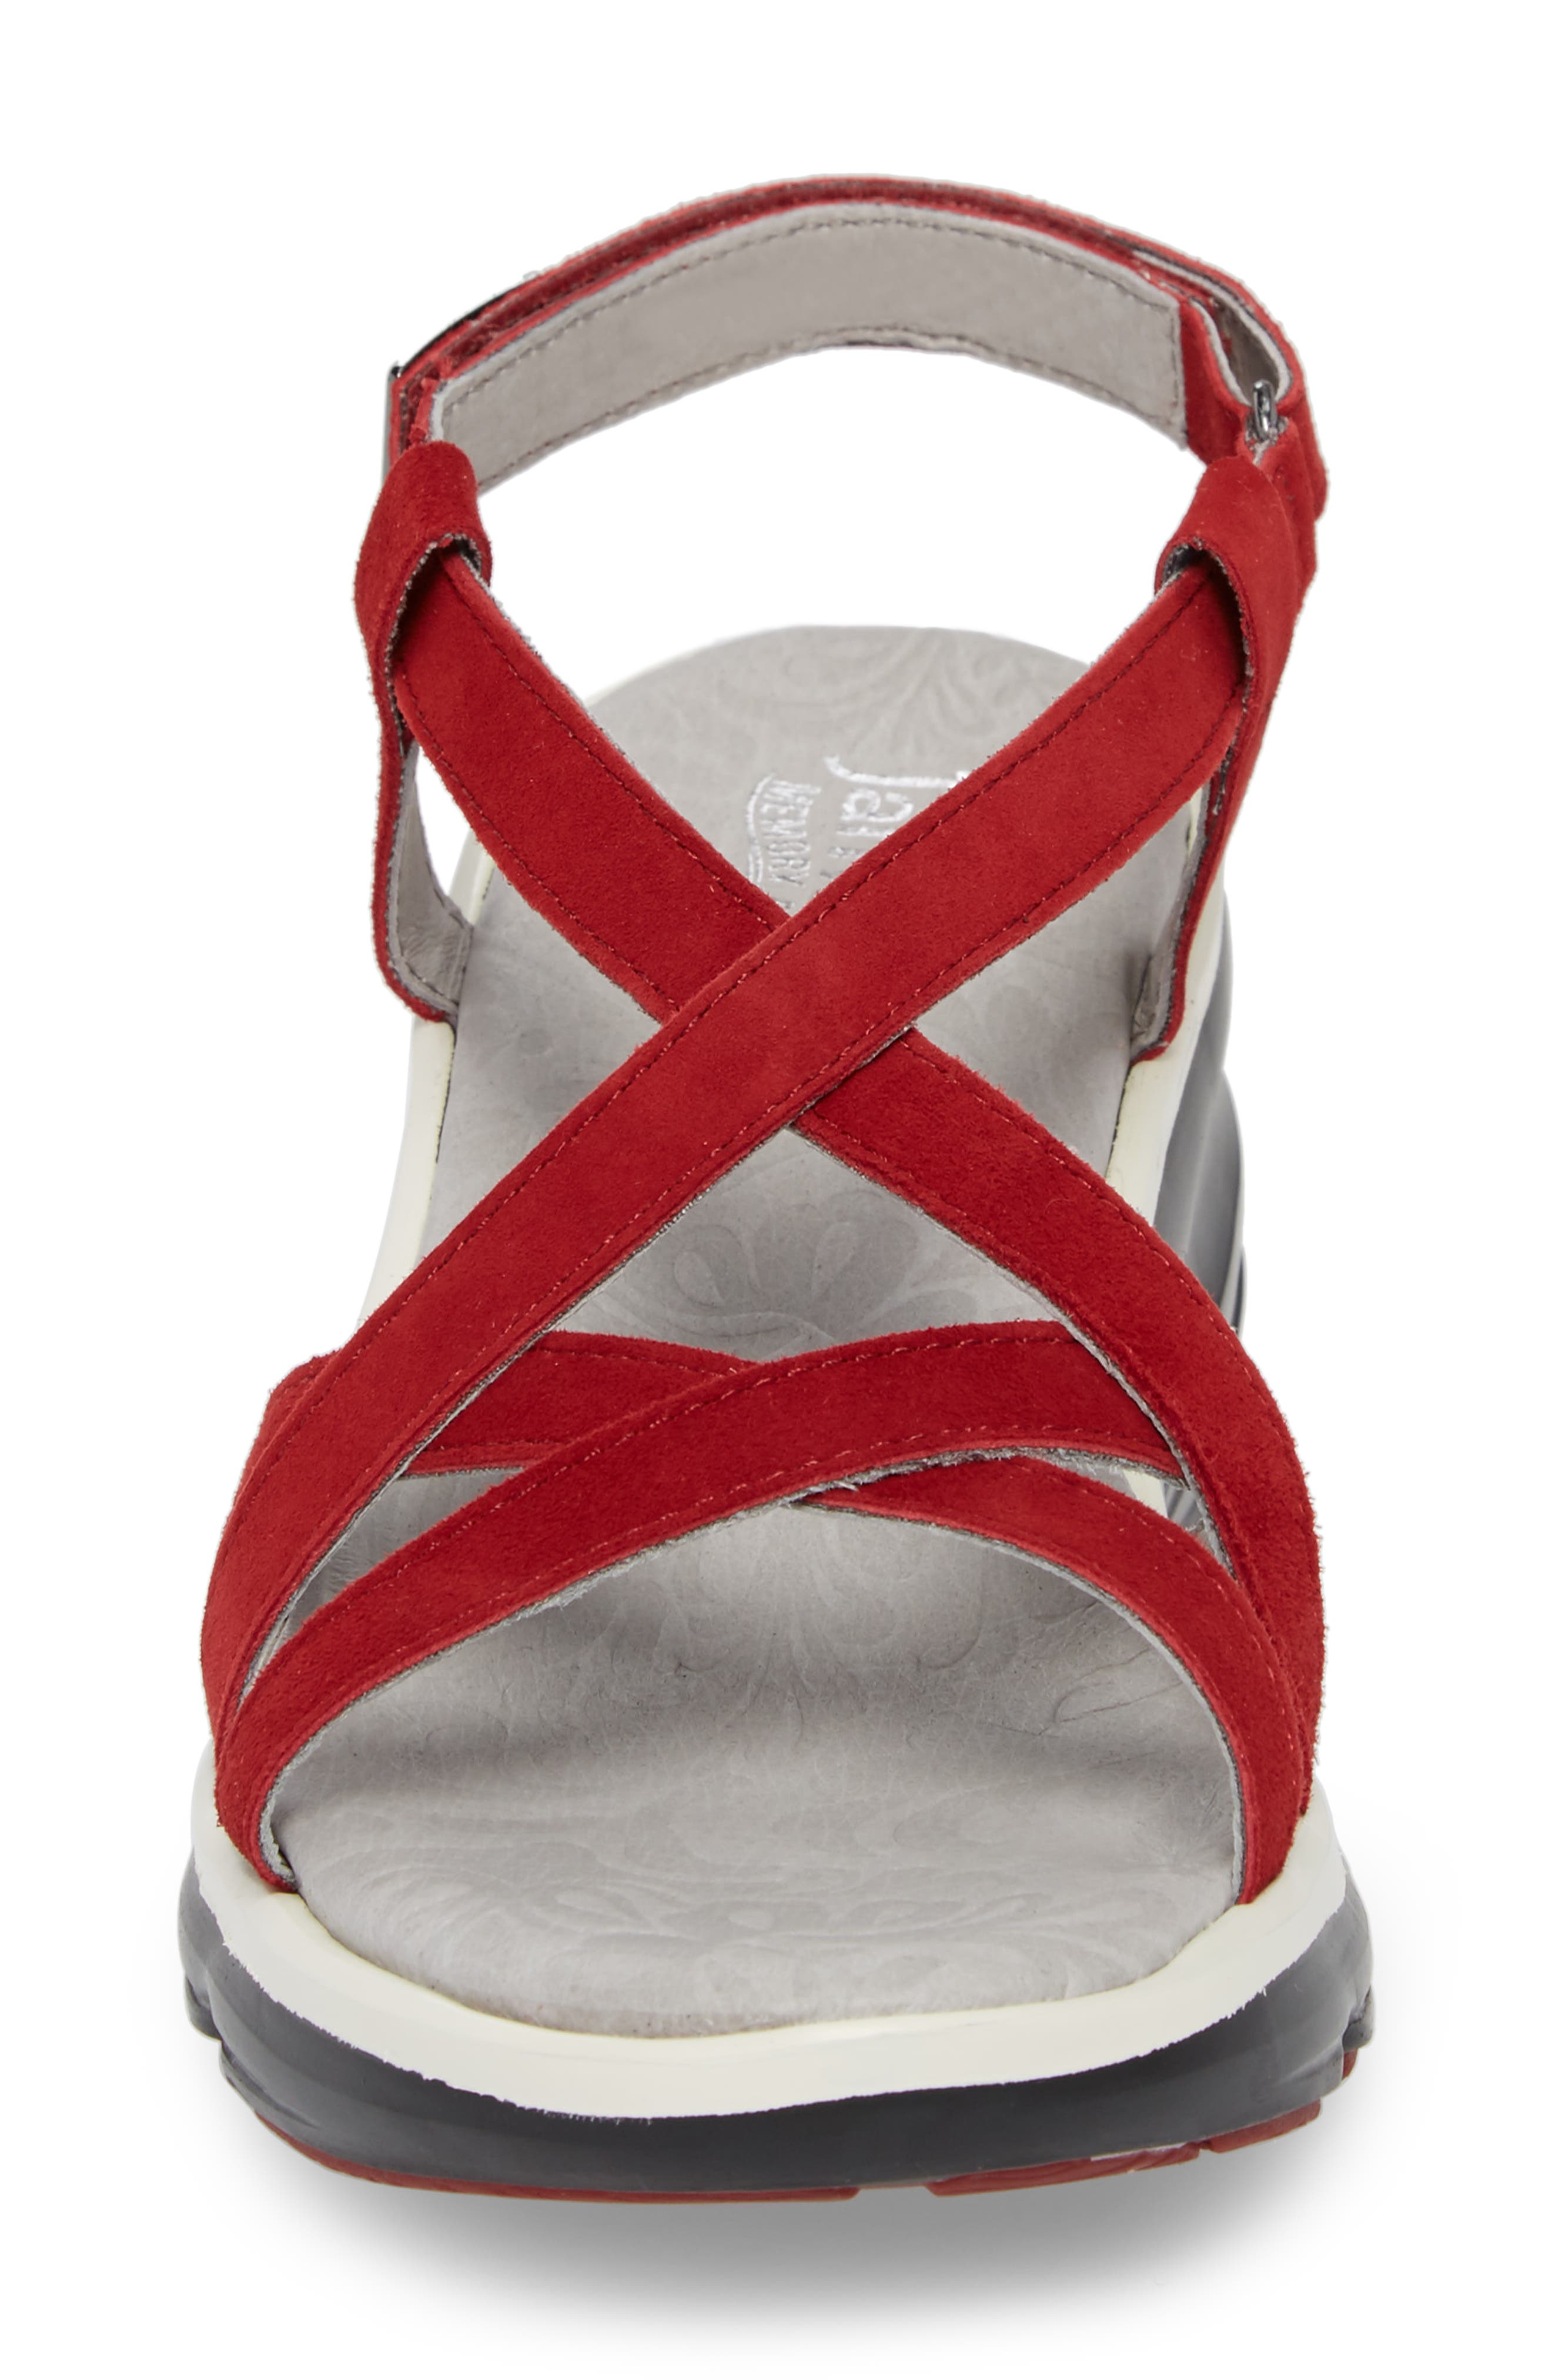 Ginger Wedge Sandal,                             Alternate thumbnail 4, color,                             Red Suede